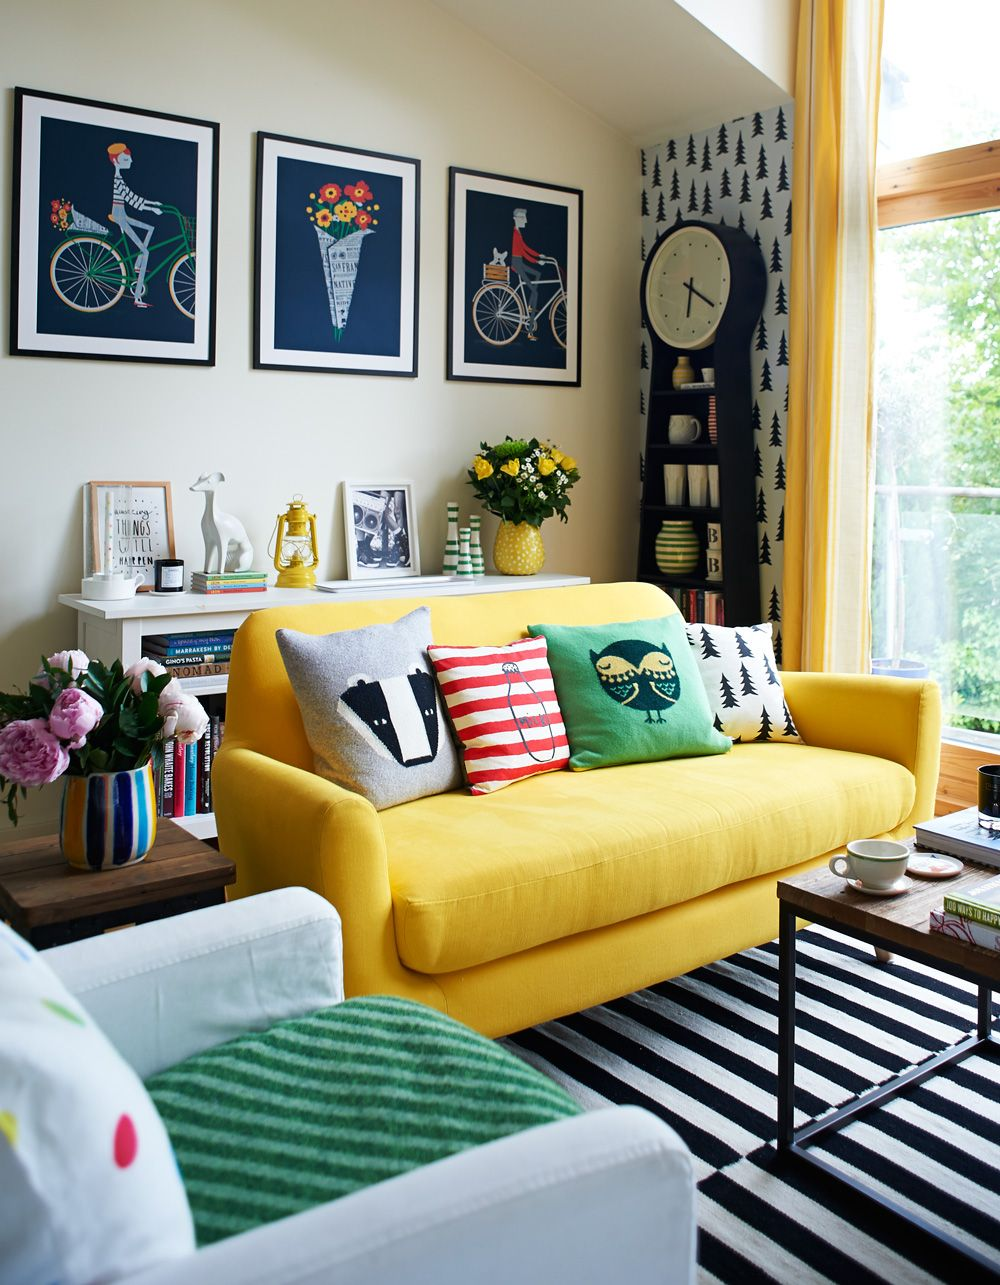 35++ Pictures for living room amazon ideas